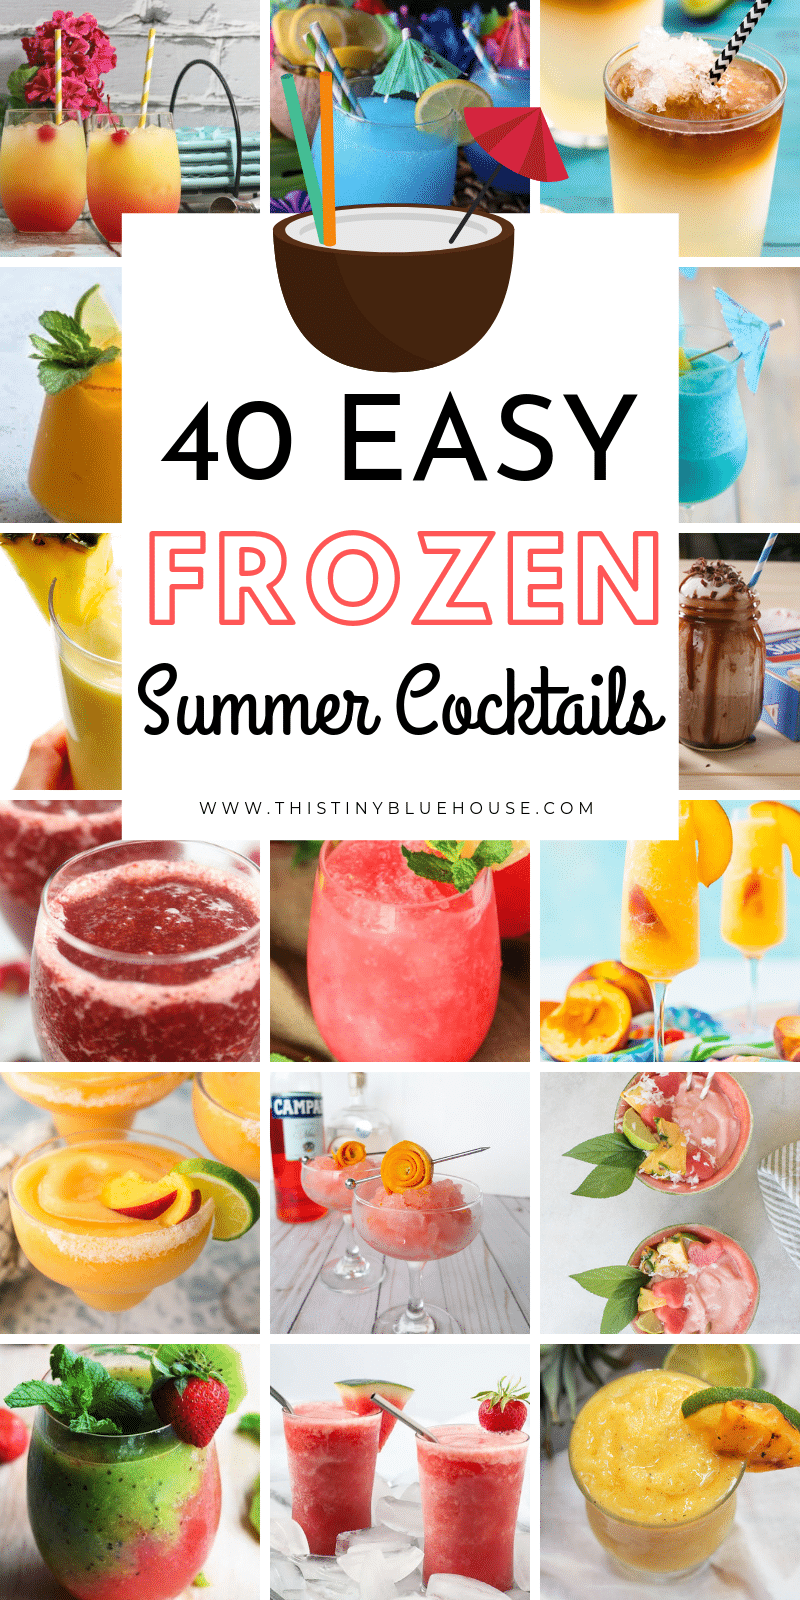 These 40 frozen summer cocktails are perfect for BBQs and long hot days with friends. Get your blender ready to whip up these delicious drinks! #cocktails #frozencocktails #summercocktails #frozensummercocktails #frozensummerdrinks #frozendrinkideas #frozencocktailideas